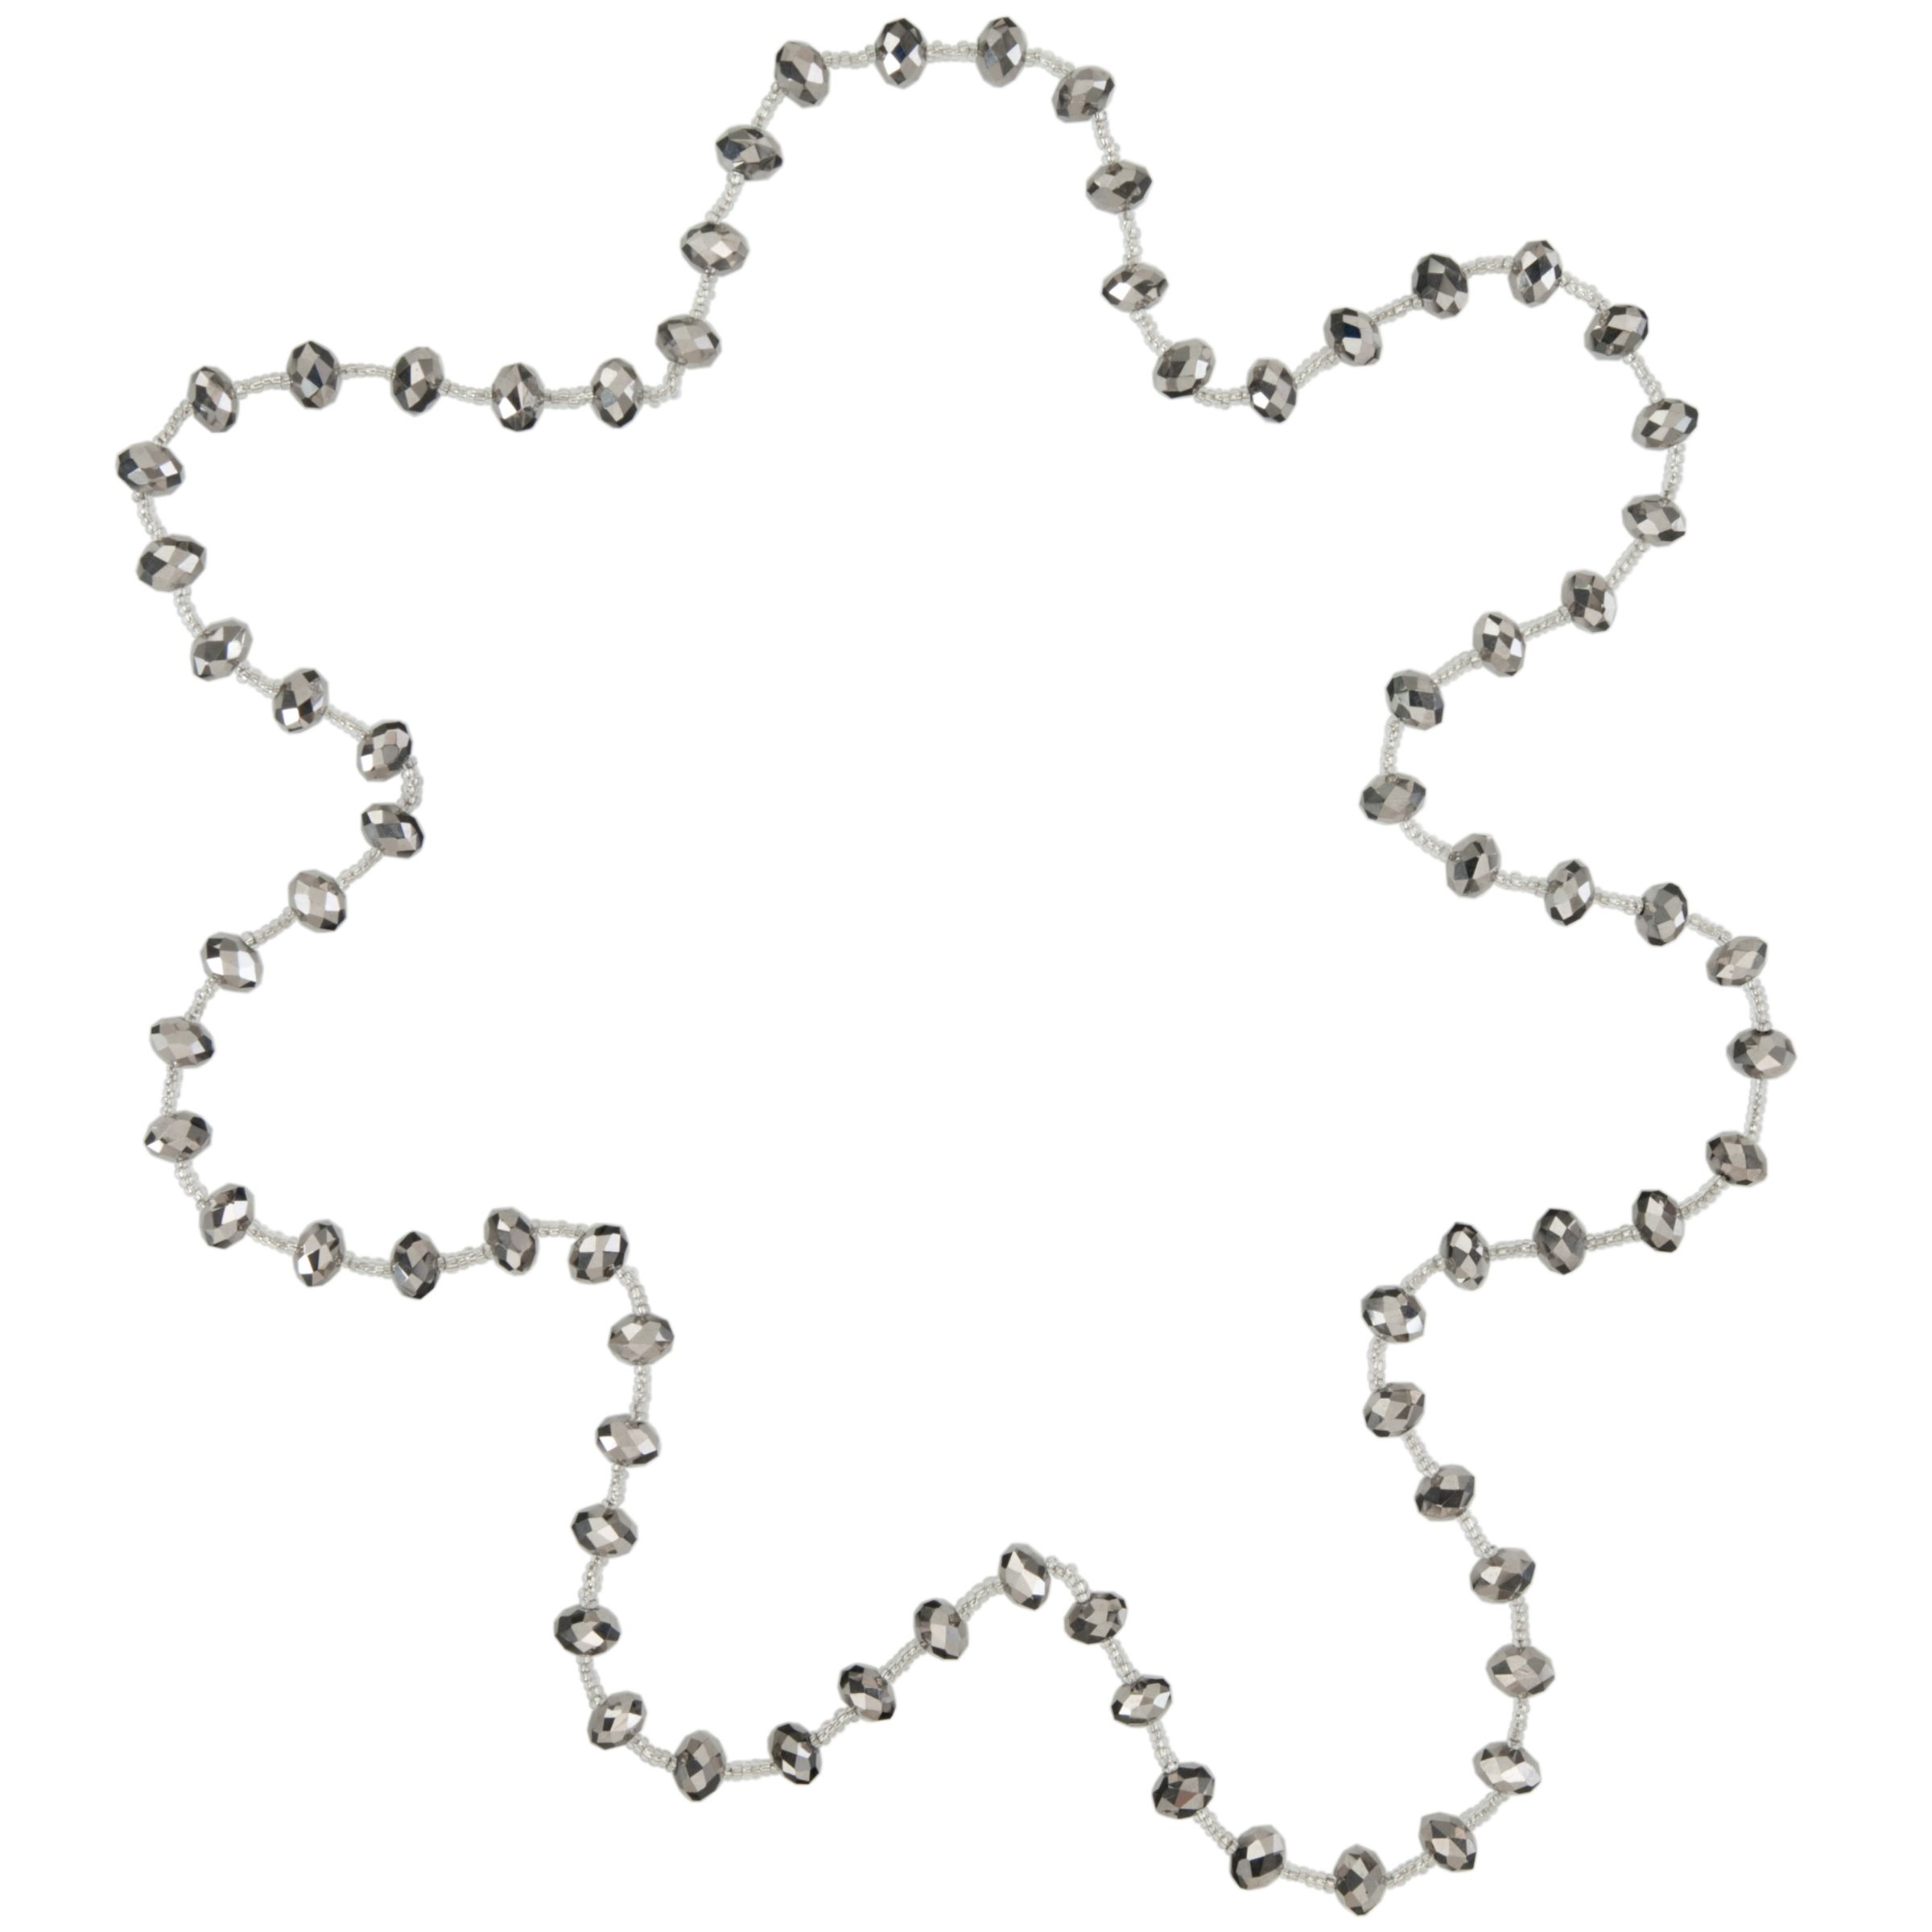 John Lewis Core Silver Beaded Long Necklace